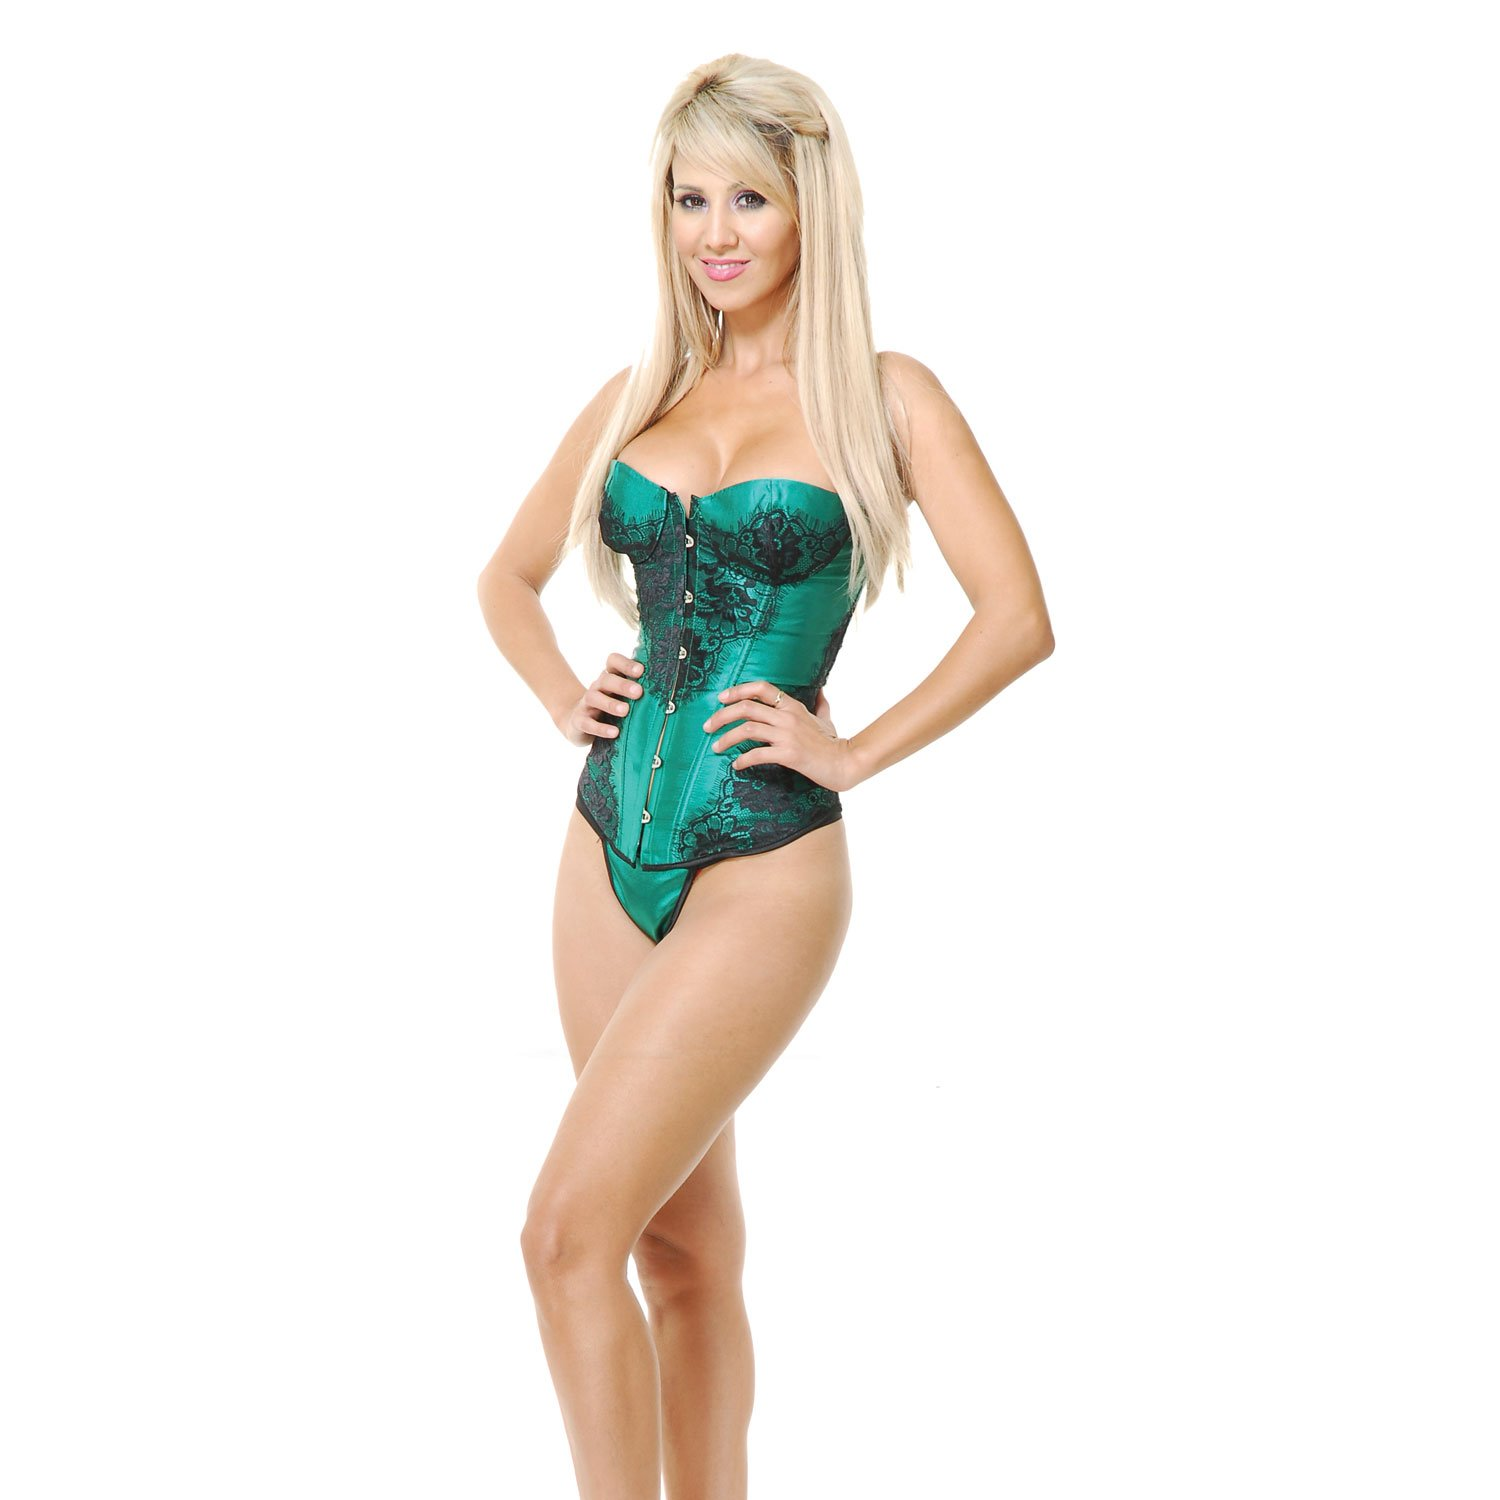 CHARADES CORSET W/LACE APPLIQUE & THONG Green Small Size